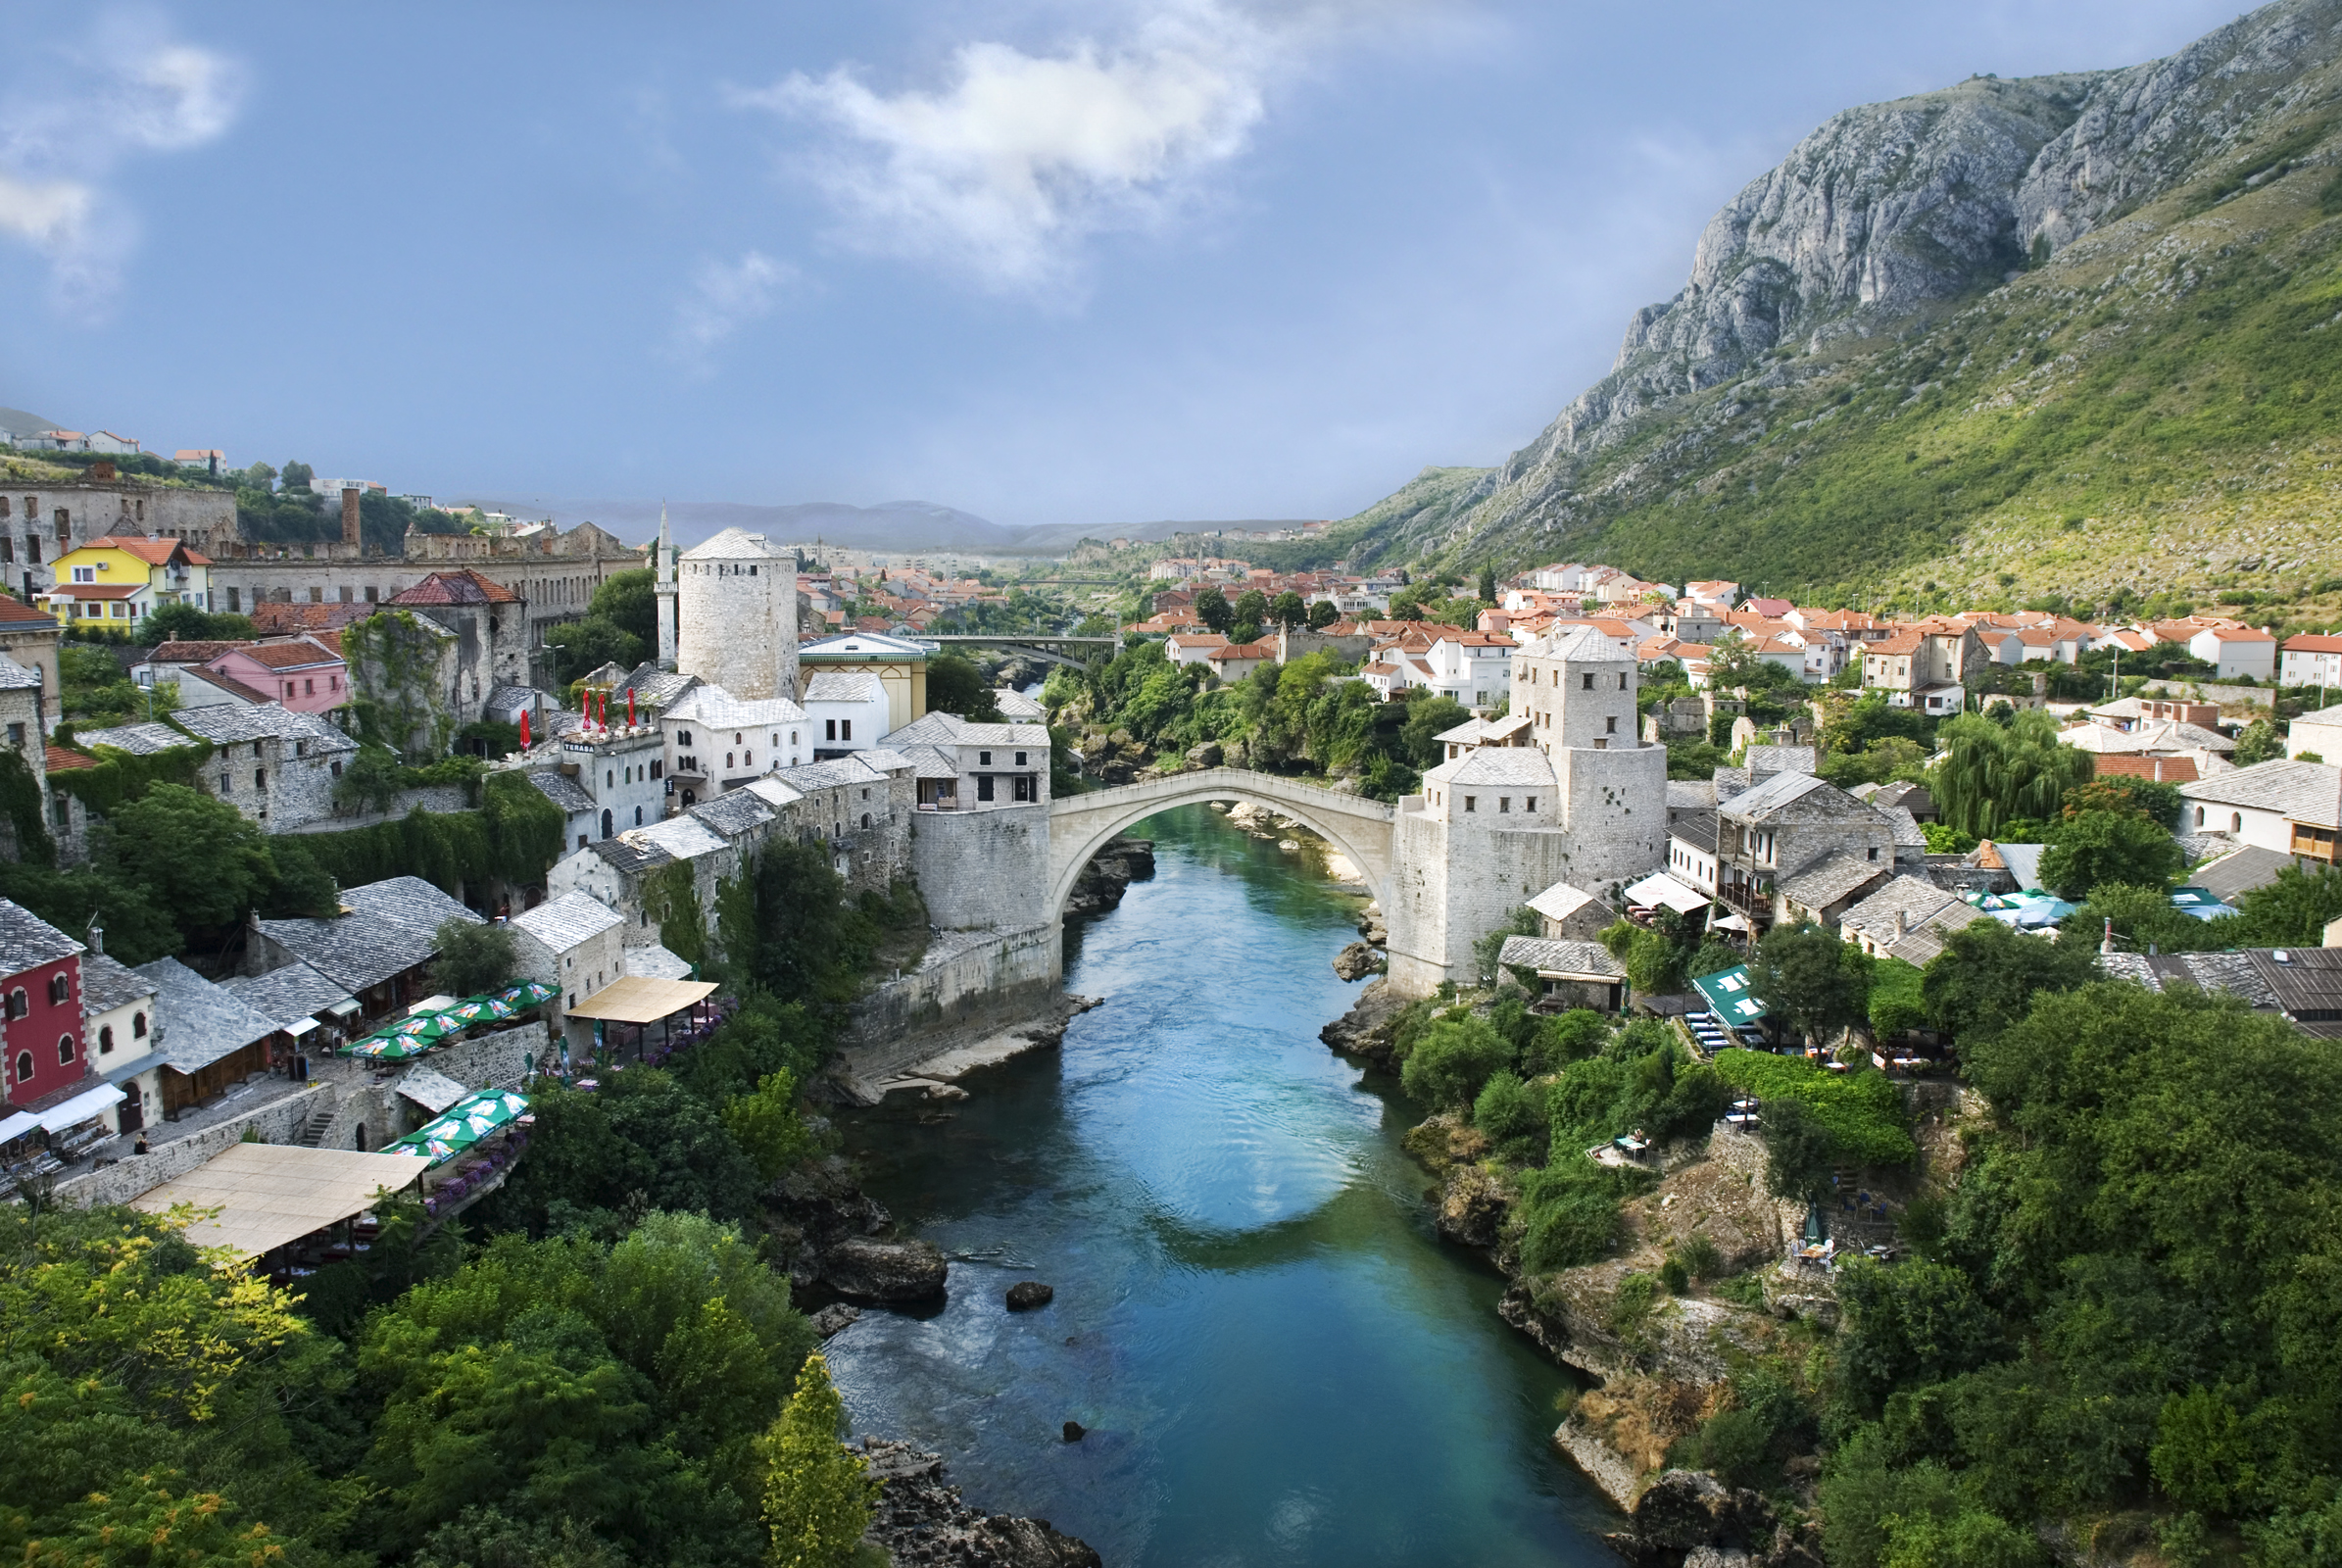 Mostar_Old_Town_Panorama_2007.jpg